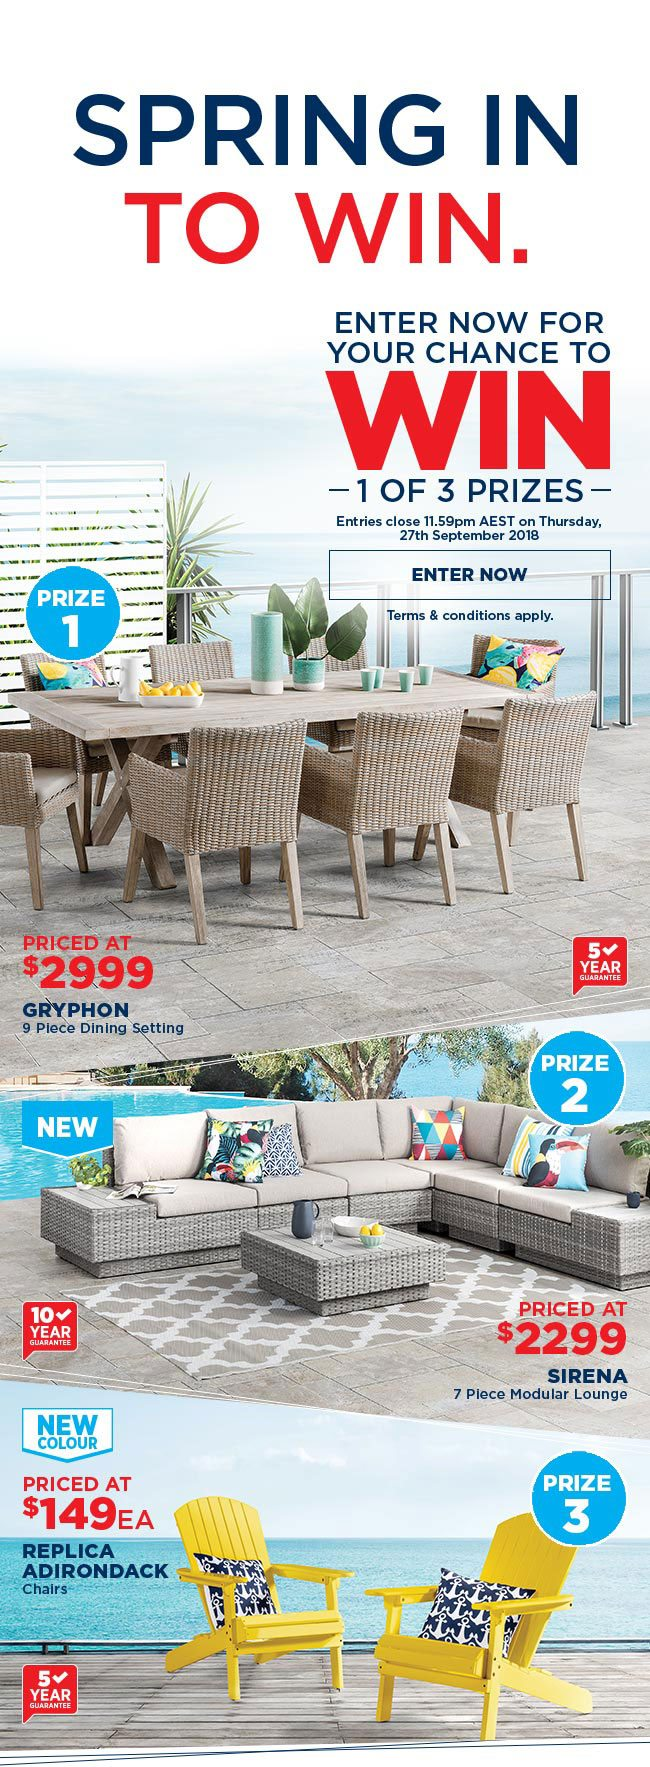 SPRING IN TO WIN. Enter now for your chance to win 1 of 3 prizes - Spring In To Win 1 Of 3 Outdoor Furniture Prizes! - Amart Furniture